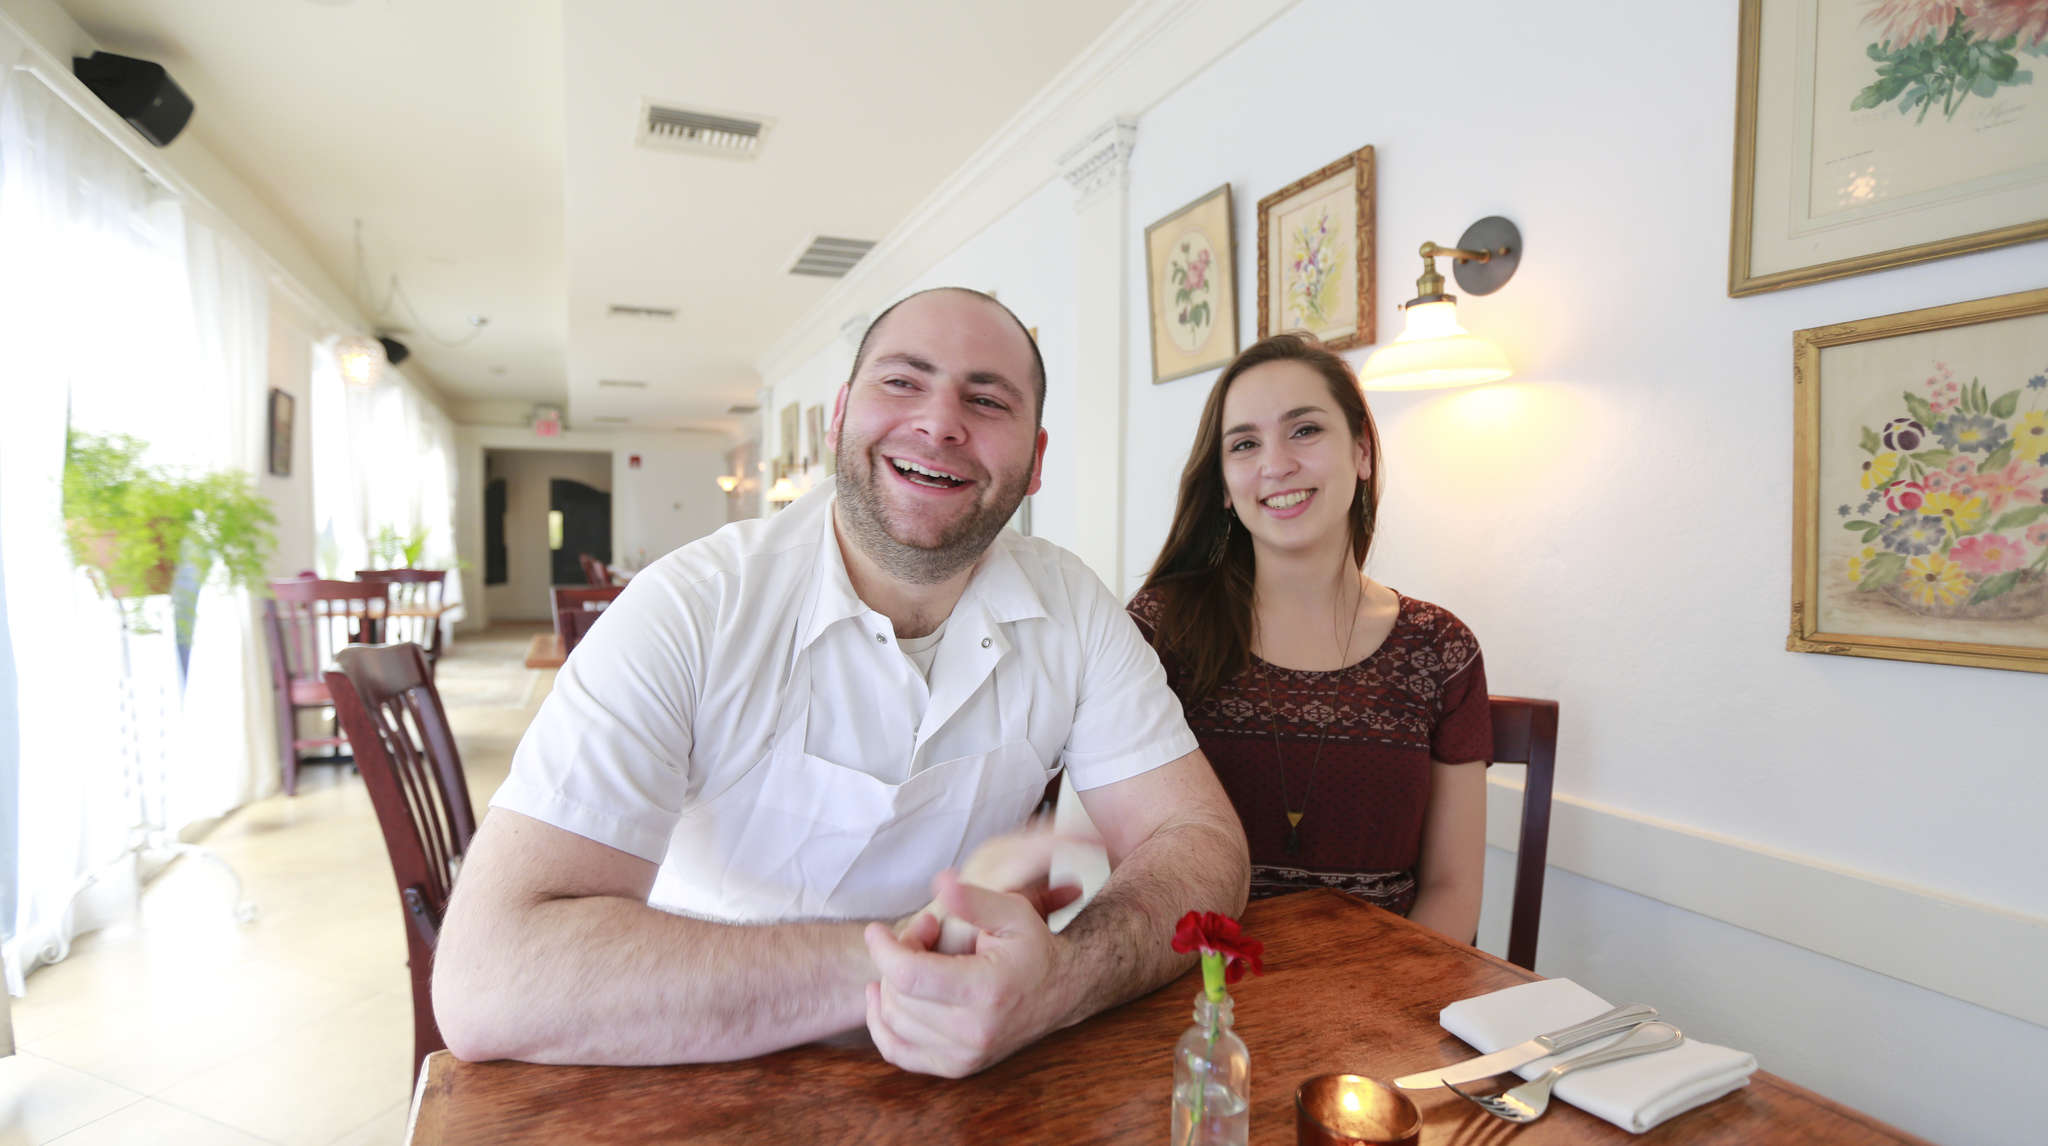 Southwark chef Chris D´Ambro and his partner-fiancee, Marina De Oliveira, plan to undertake another venture this summer.